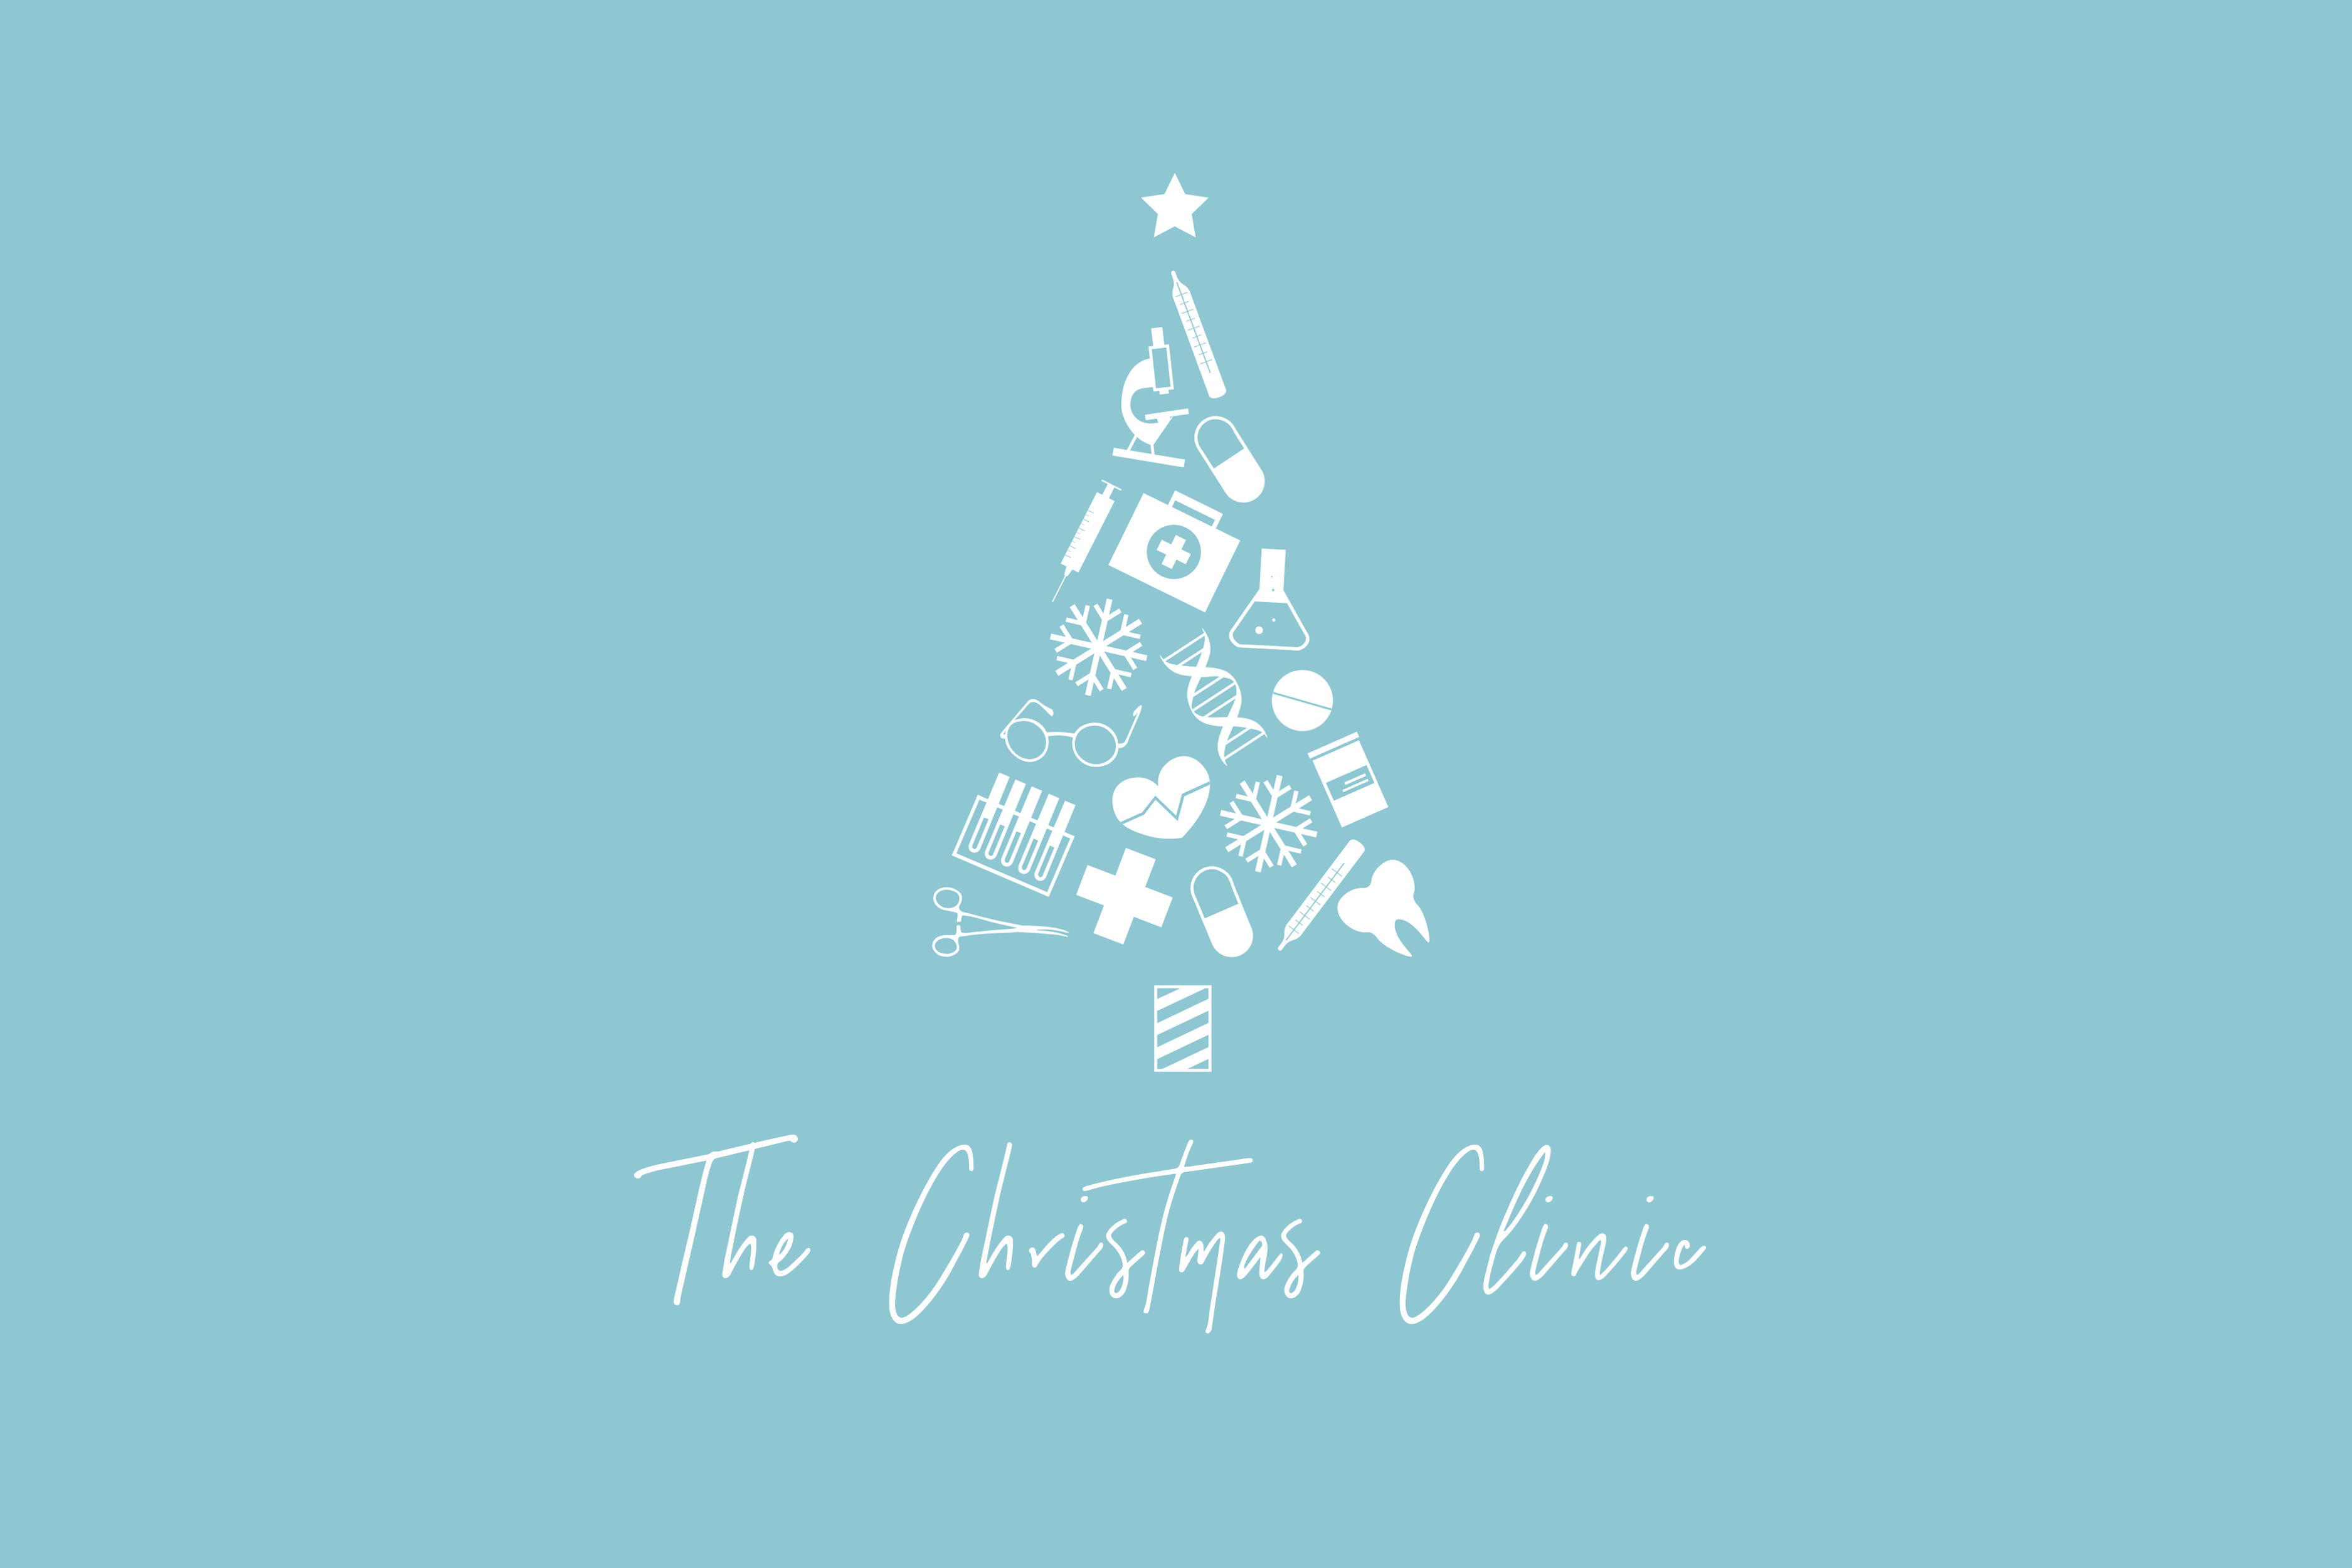 The Christmas Clinic image